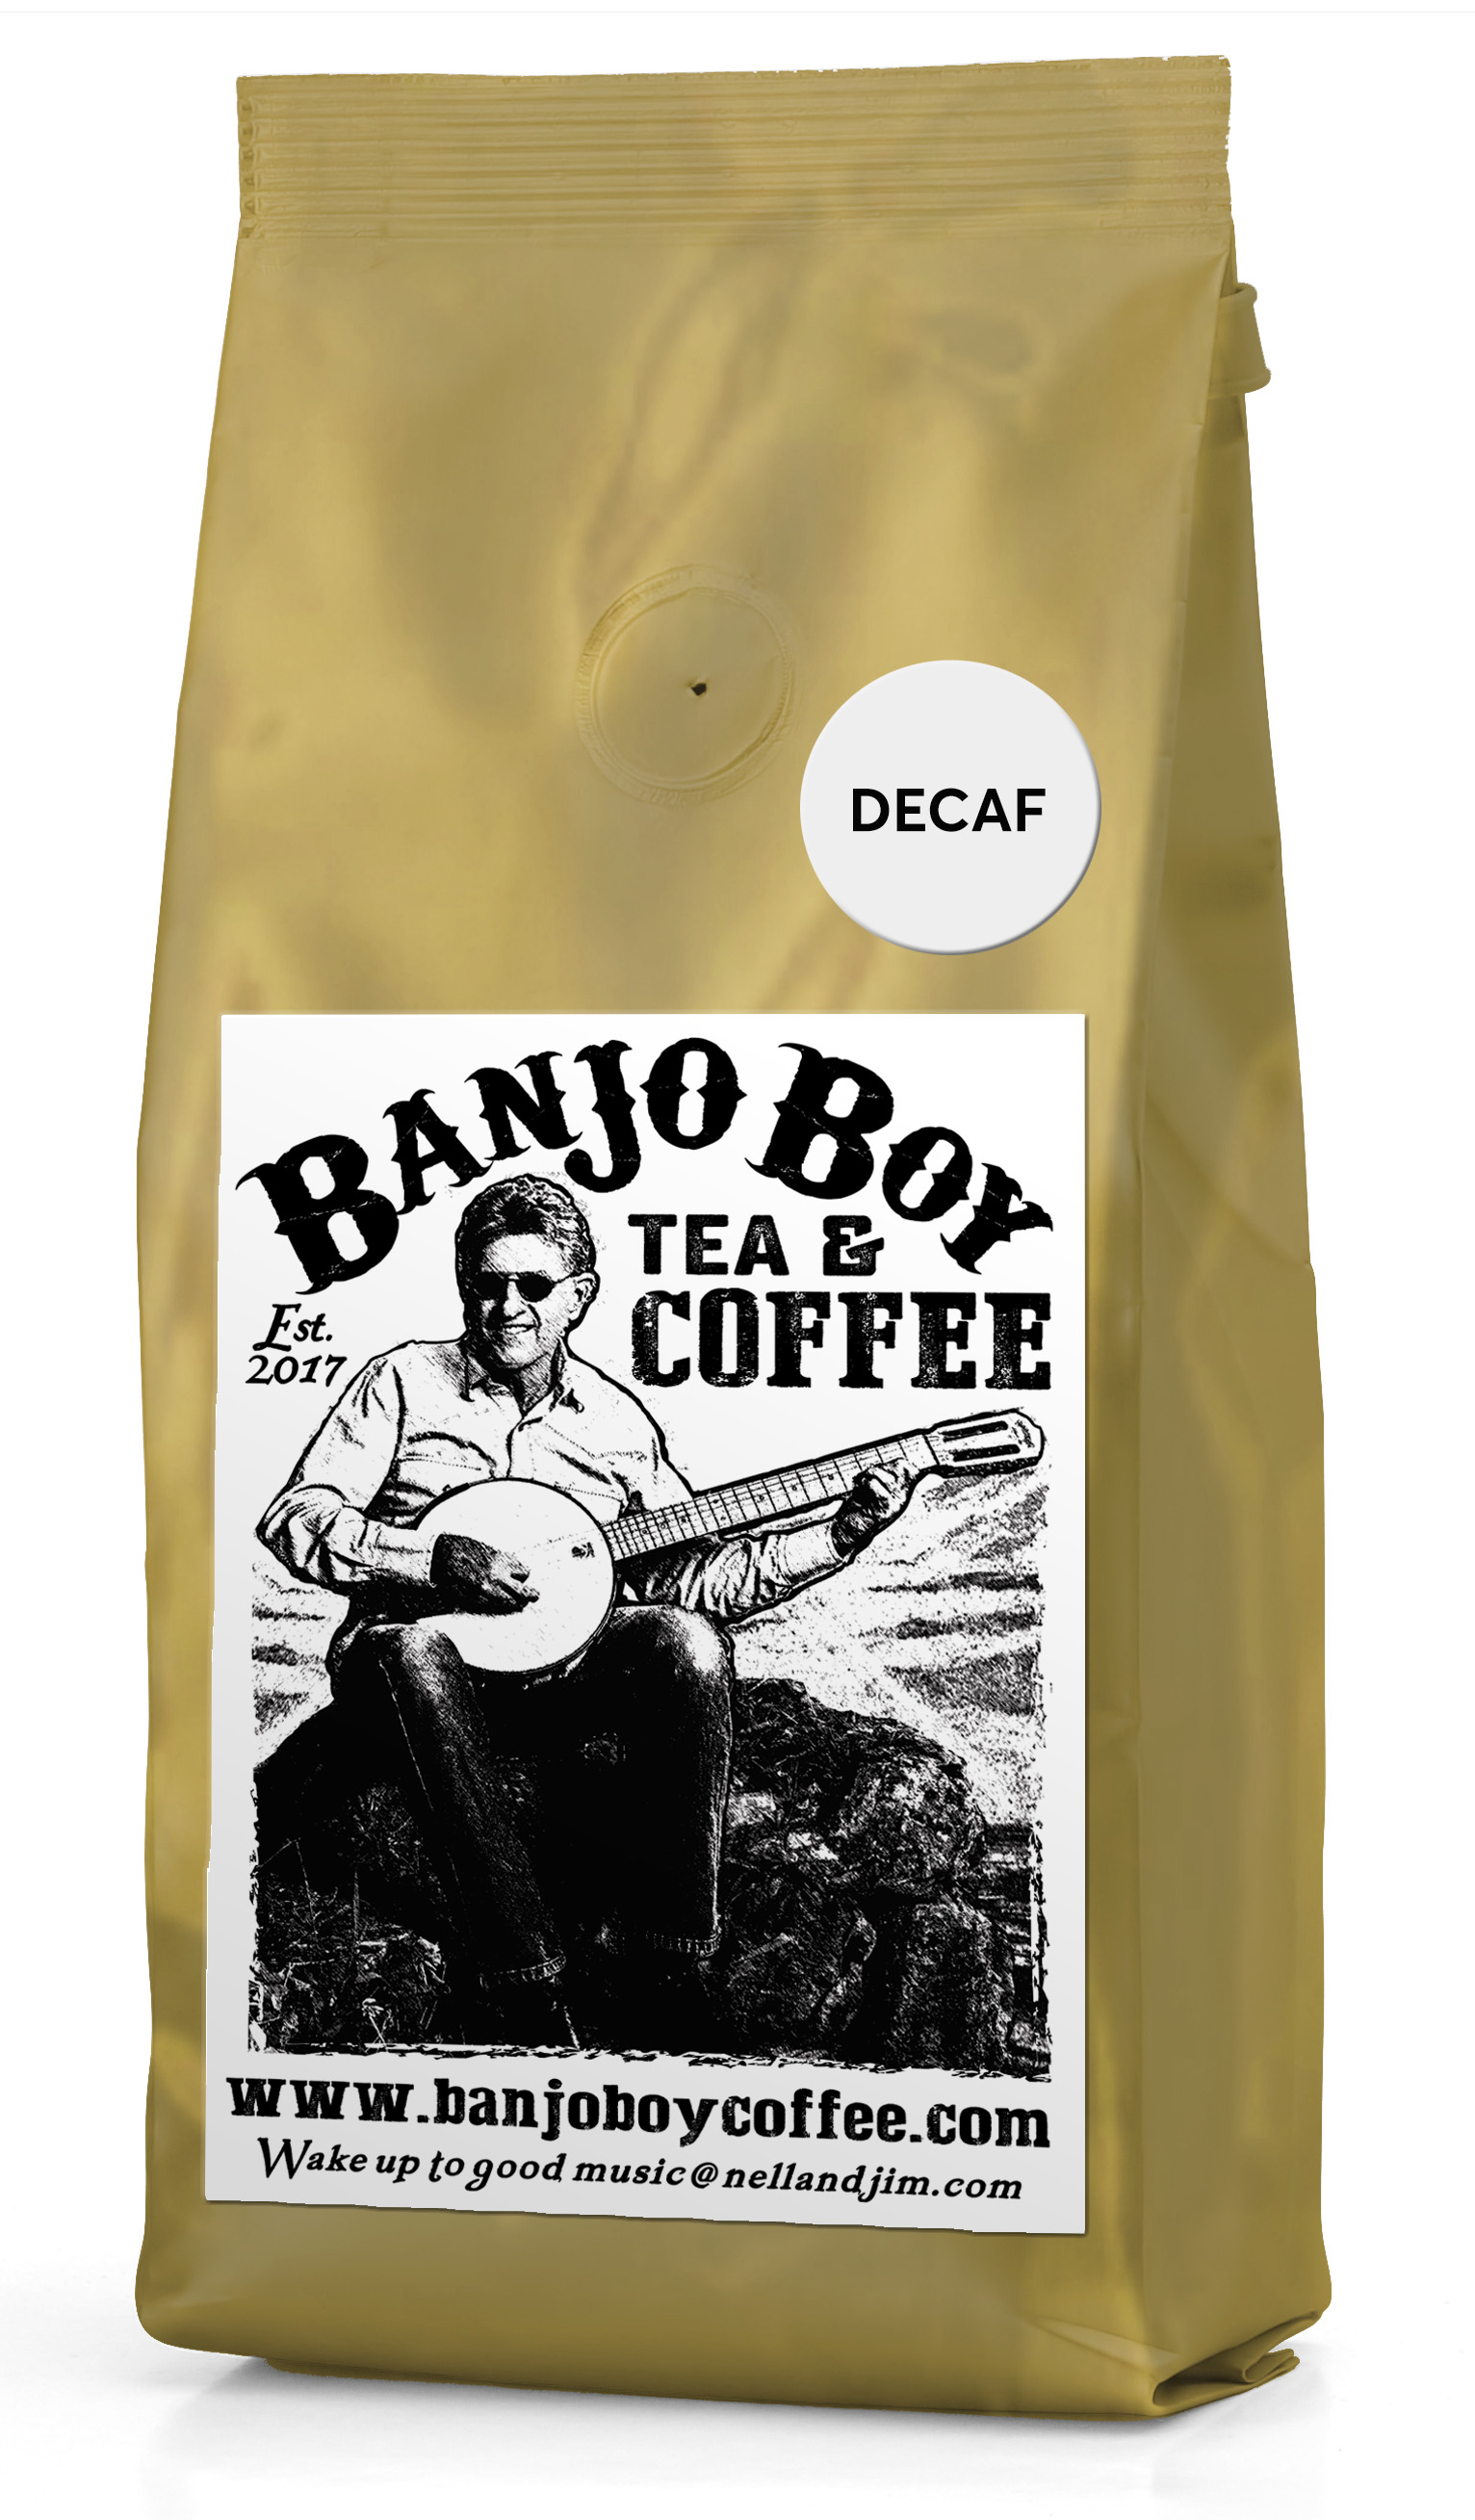 NEW! Decaf Blend - All the same great quality and flavor but with the buzz!